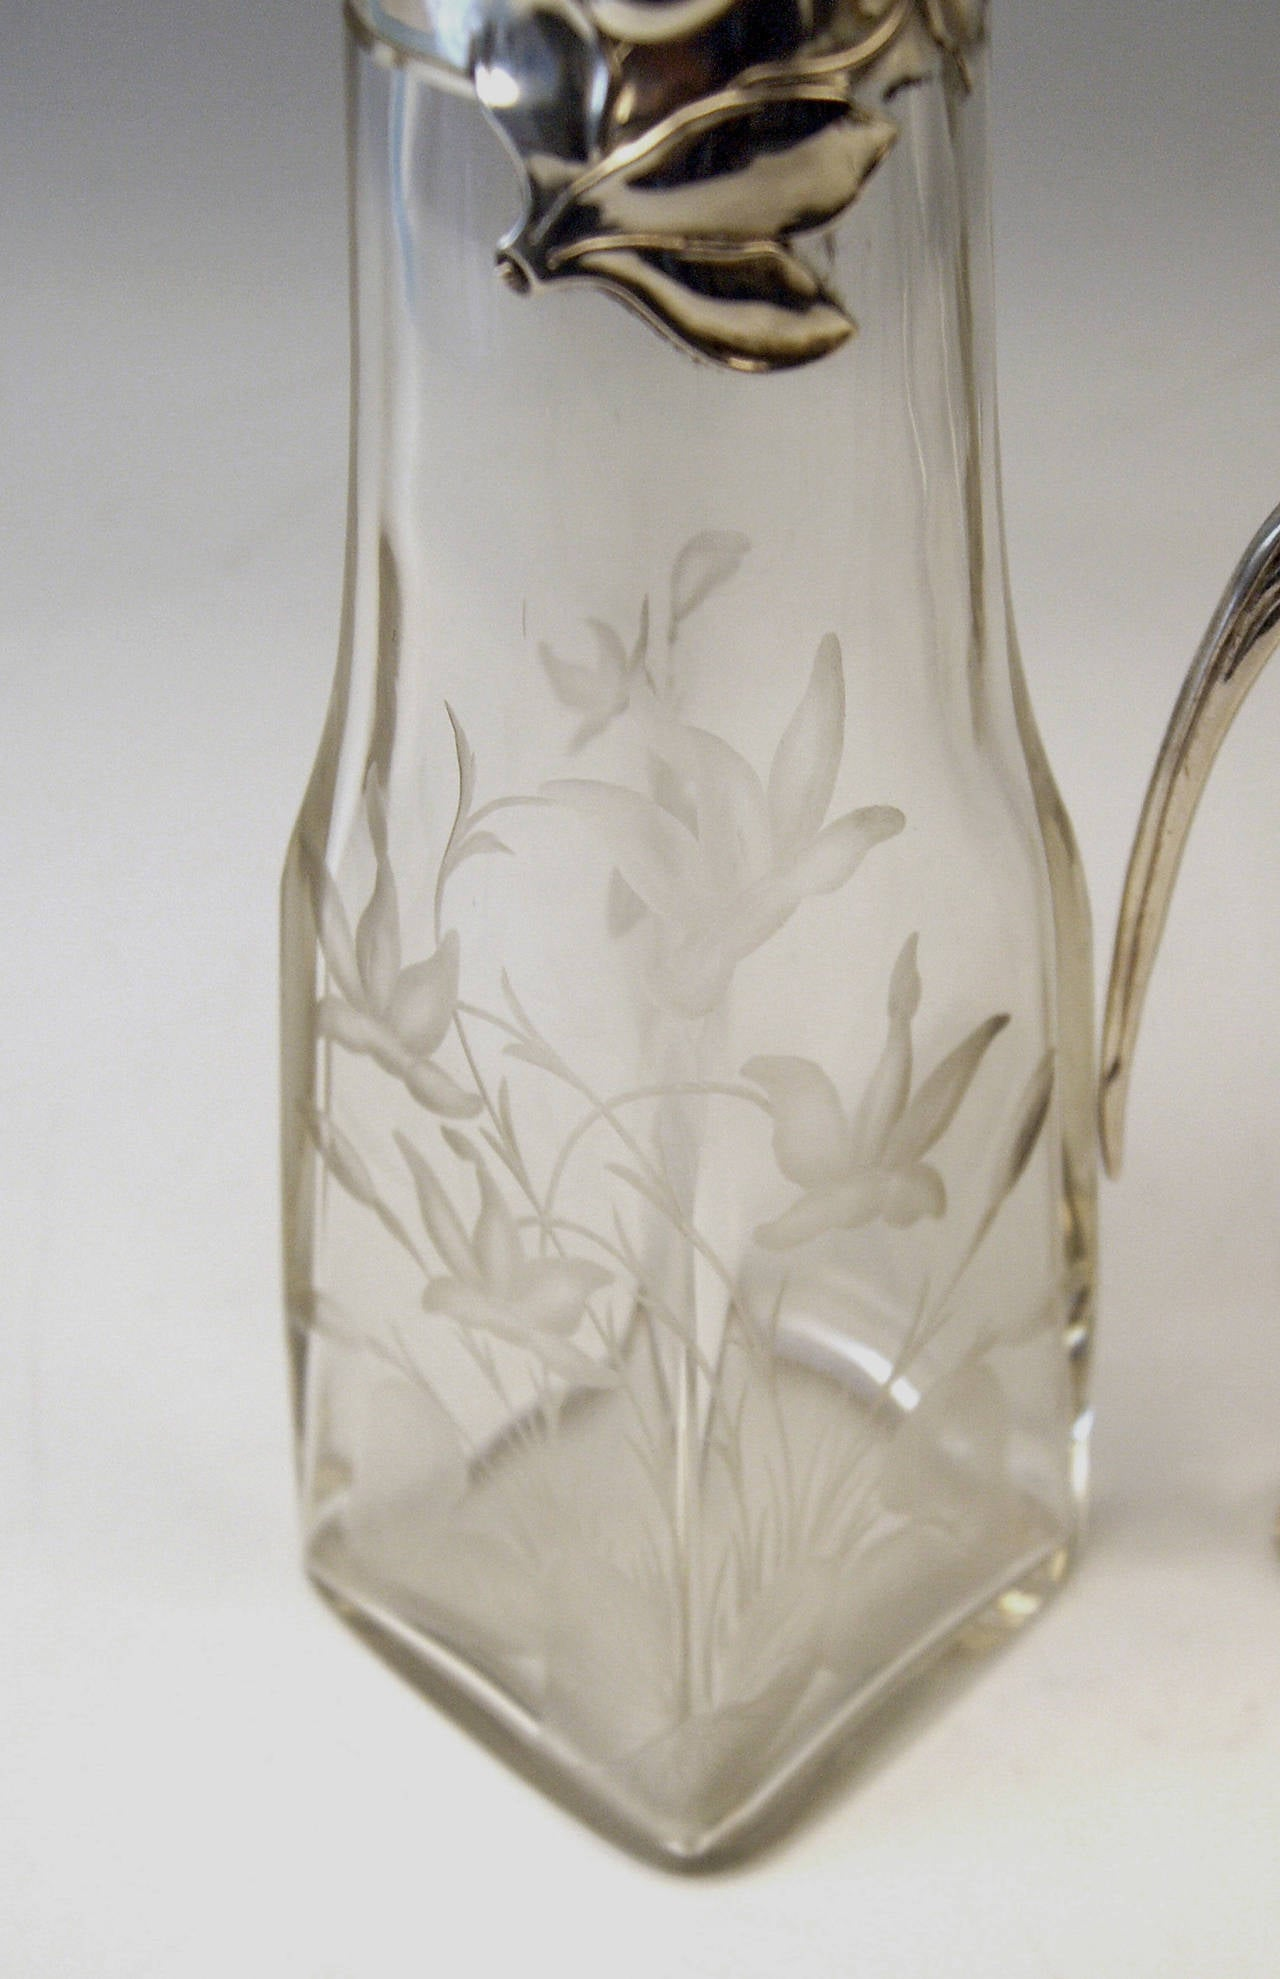 Silver Art Nouveau German Pair of Glass Decanters by Otto Wolter, circa 1900 5